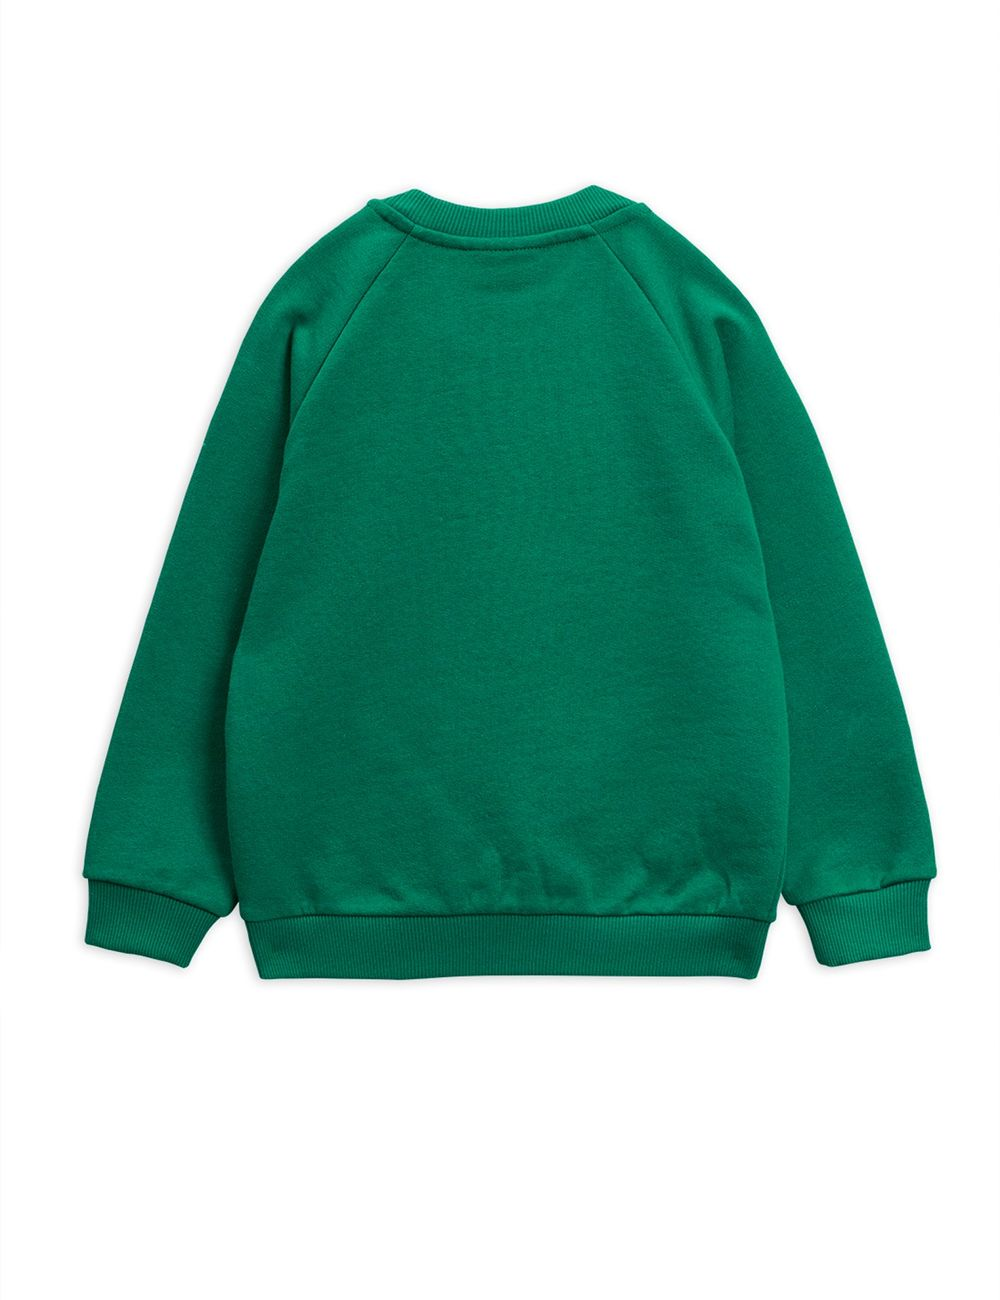 MINI RODINI BLAH SP SWEATSHIRT, GREEN